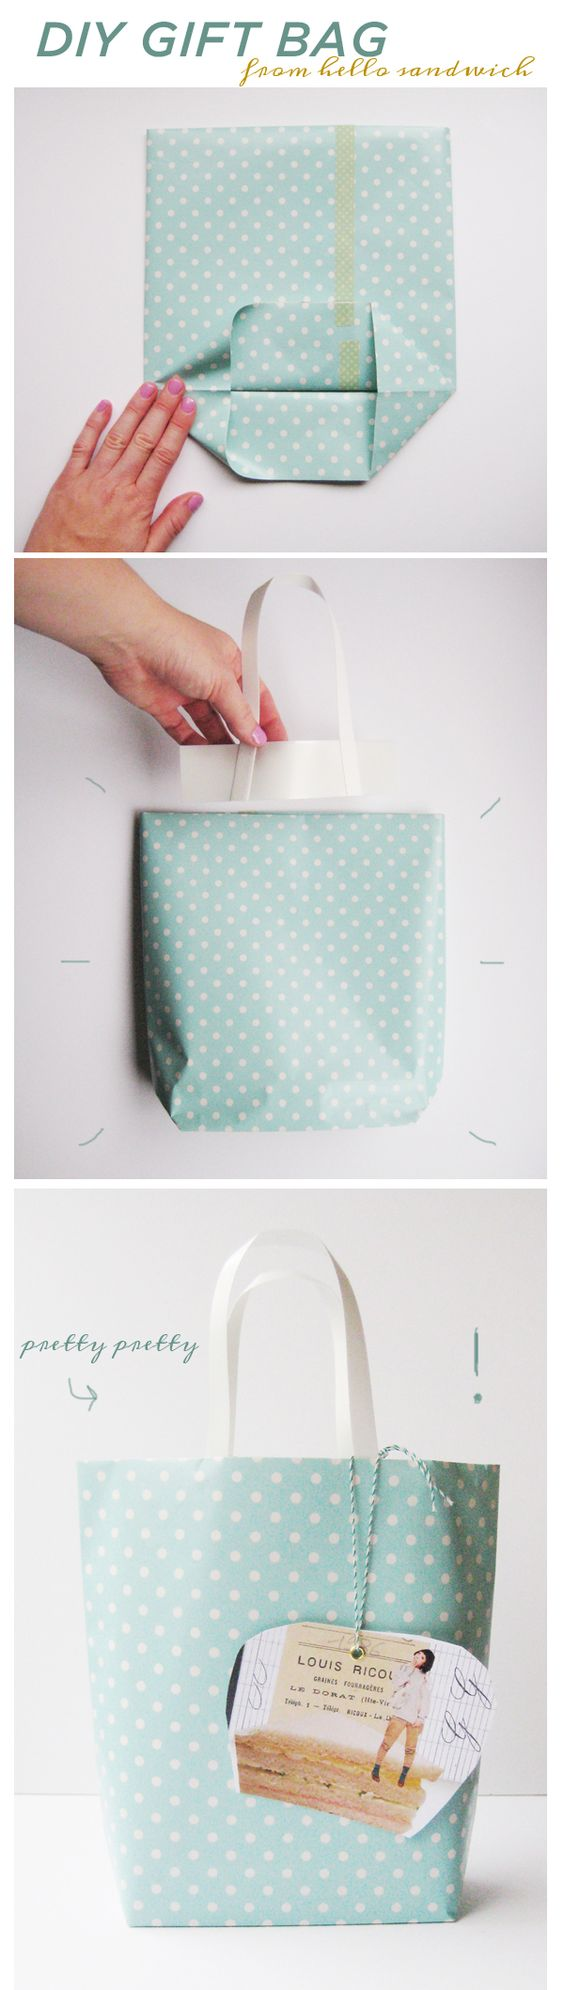 wow look at this DIY gift bag...love this idea, the polka dot gift wrap paper helps too x: Wrapping Paper, Giftbag, Diy Gift, Diy Craft, Homemade Gift Bag, Wrapping Gift